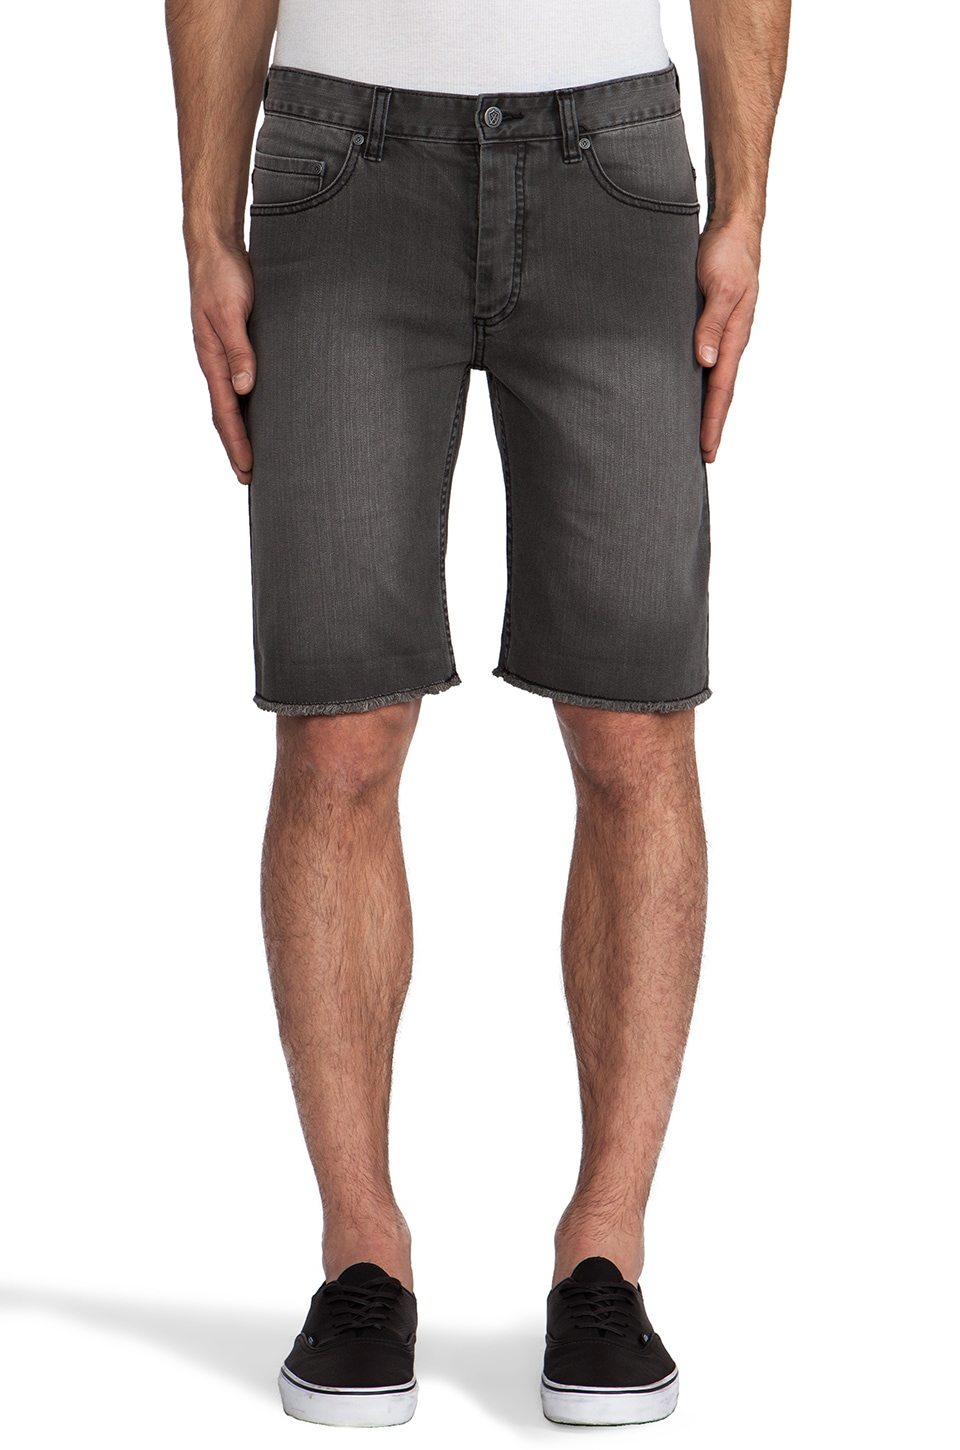 Zanerobe Piston Jean Short in Bourbon Black